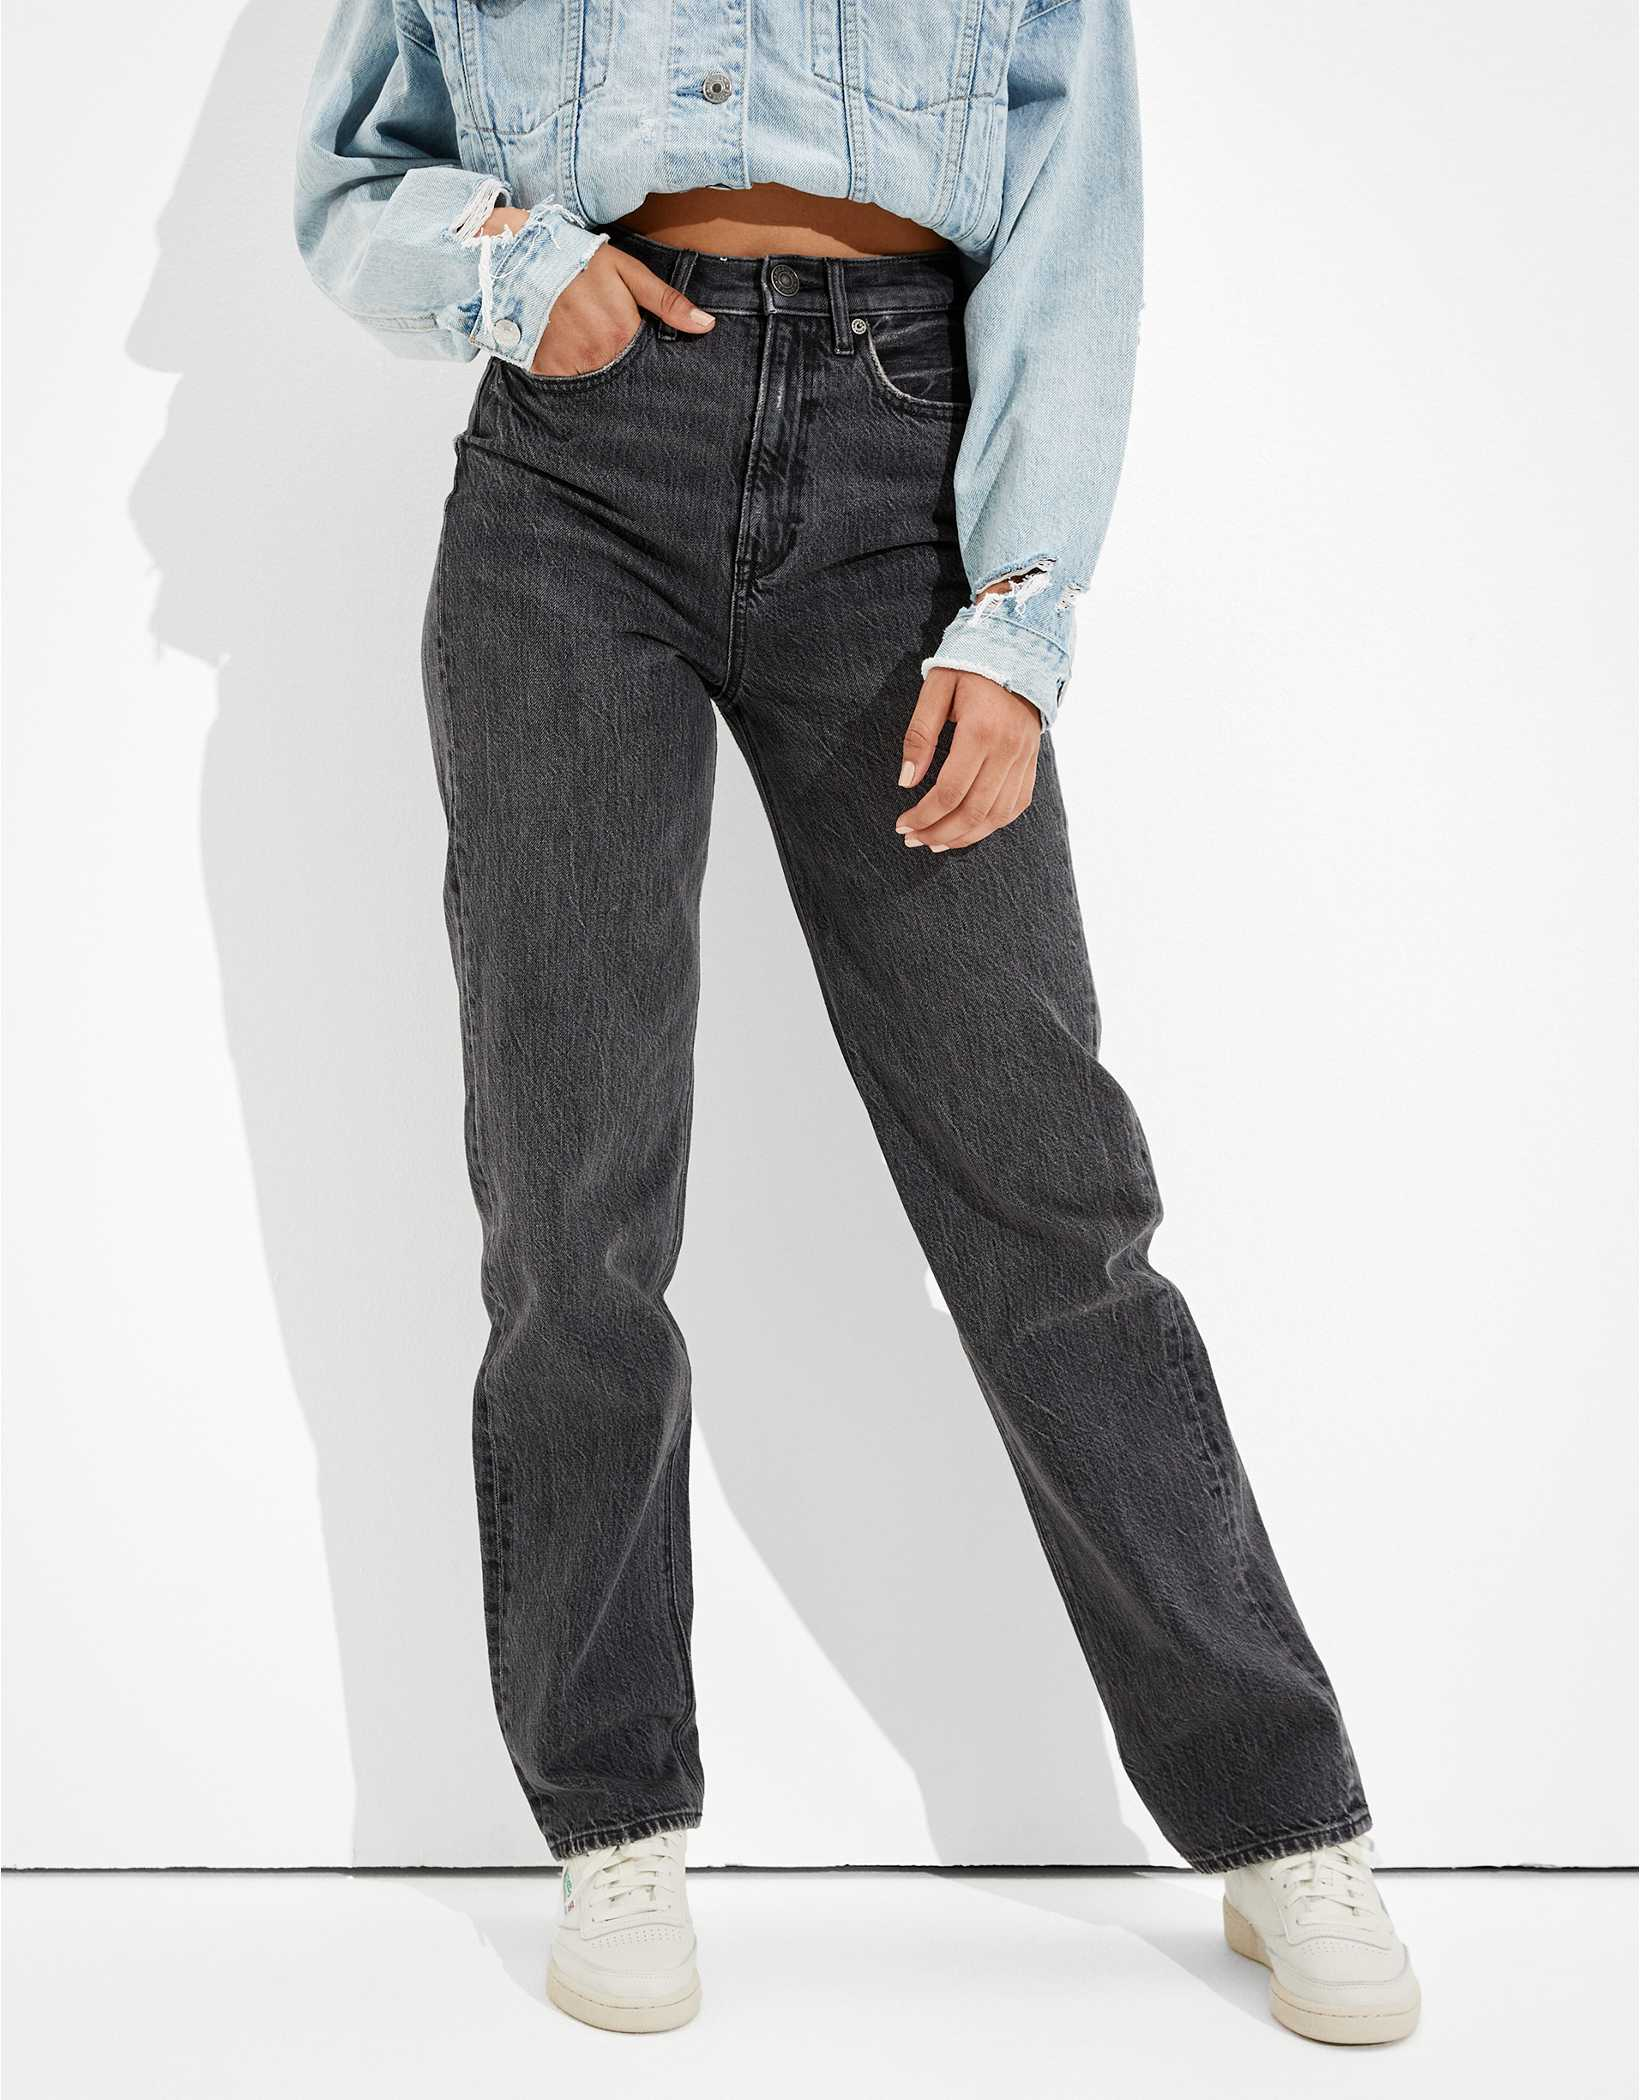 25% OFF JEANS at American Eagle!